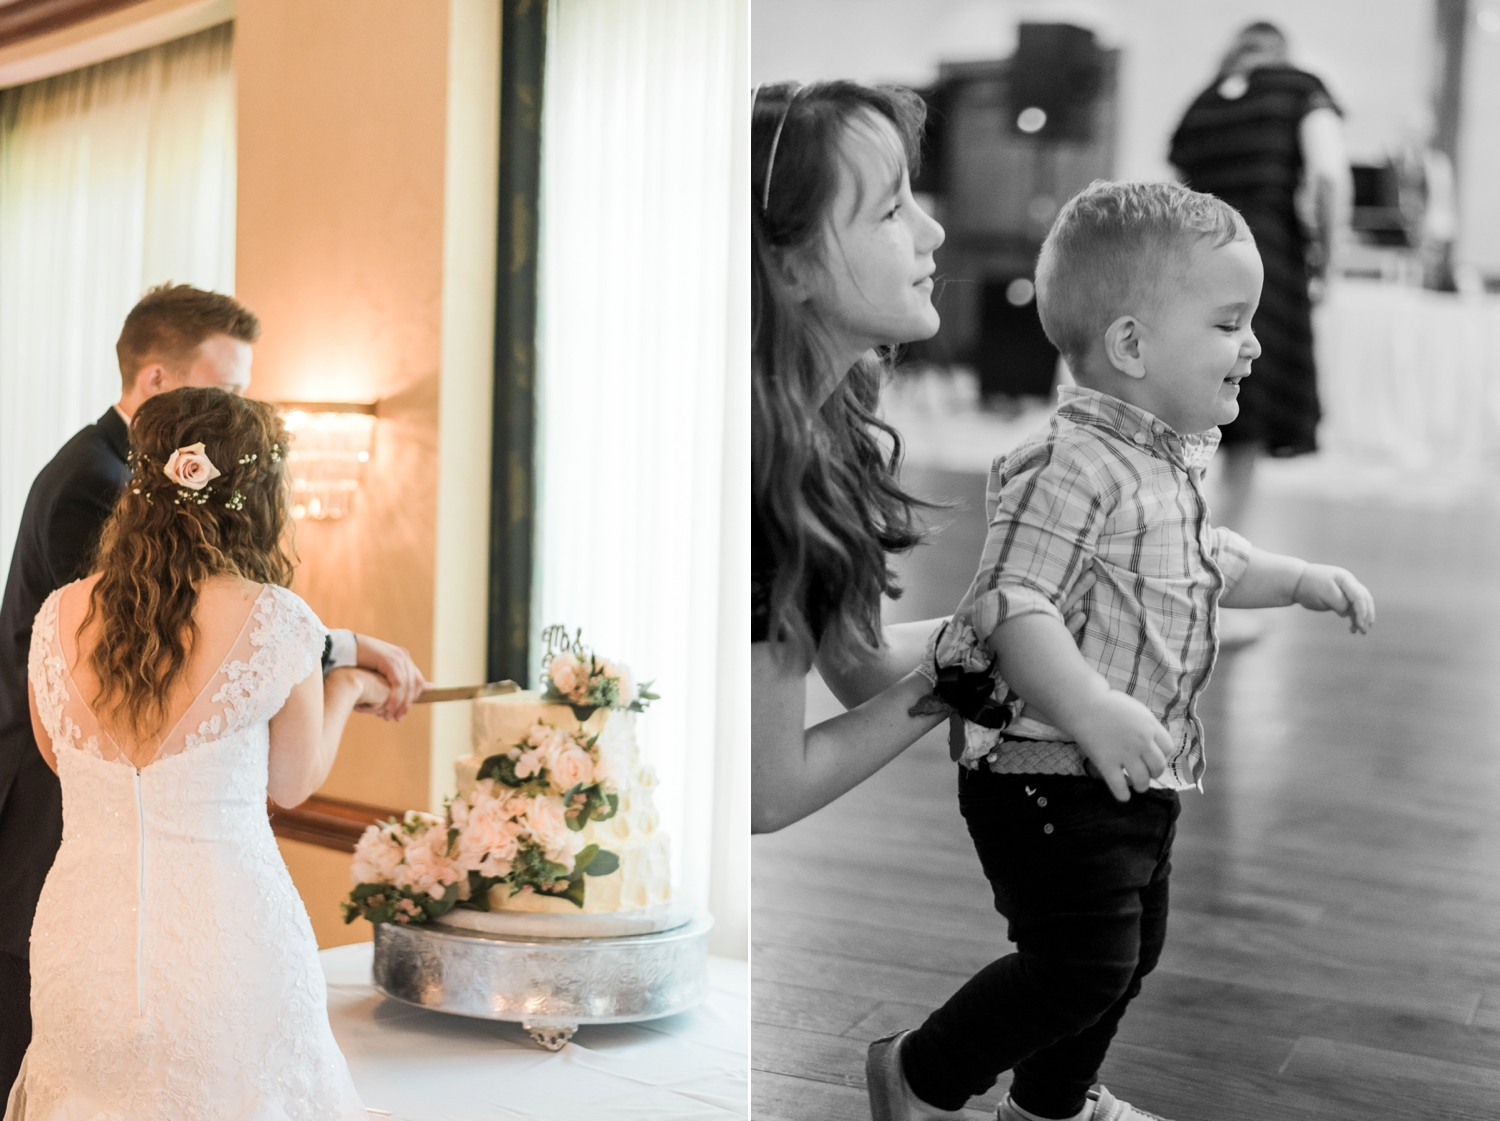 Community_Life_Center_Indianapolis_Indiana_Wedding_Photographer_Chloe_Luka_Photography_6983.jpg